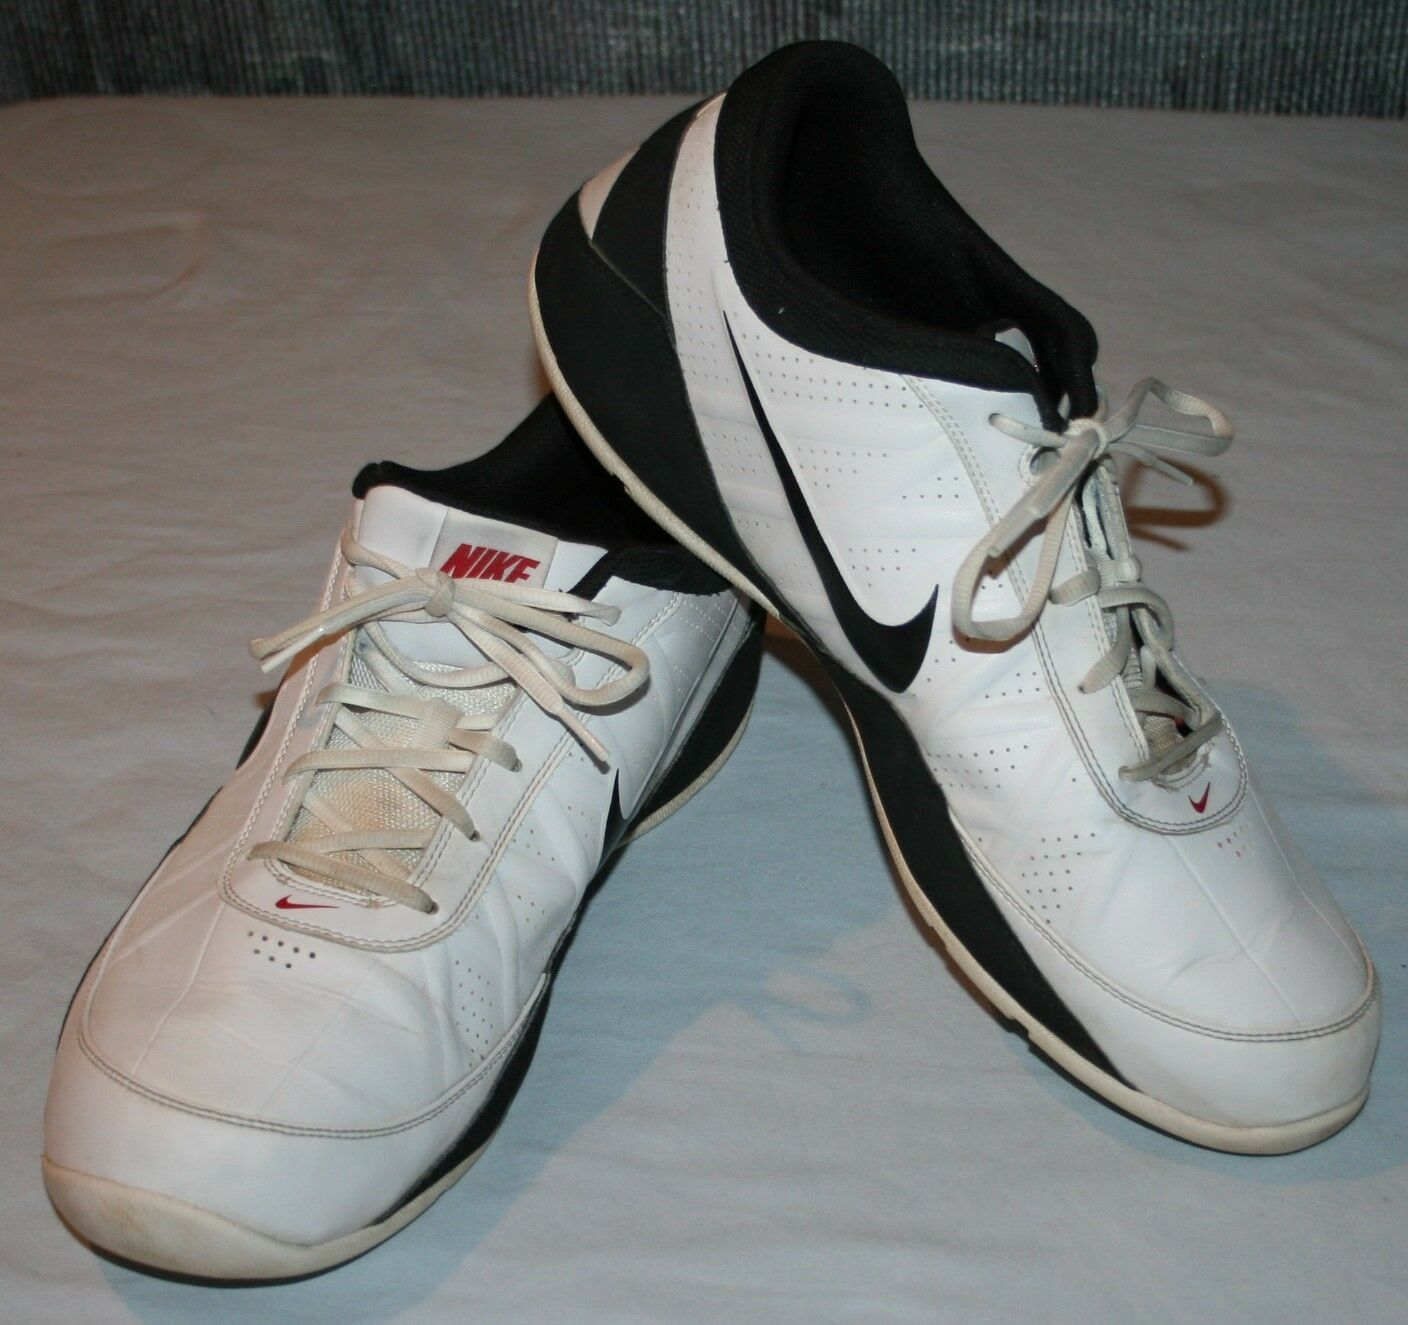 Nike Air Ring Leader Sz 15 Low Rise Sneakers Athletic Shoes 488102 White Mens